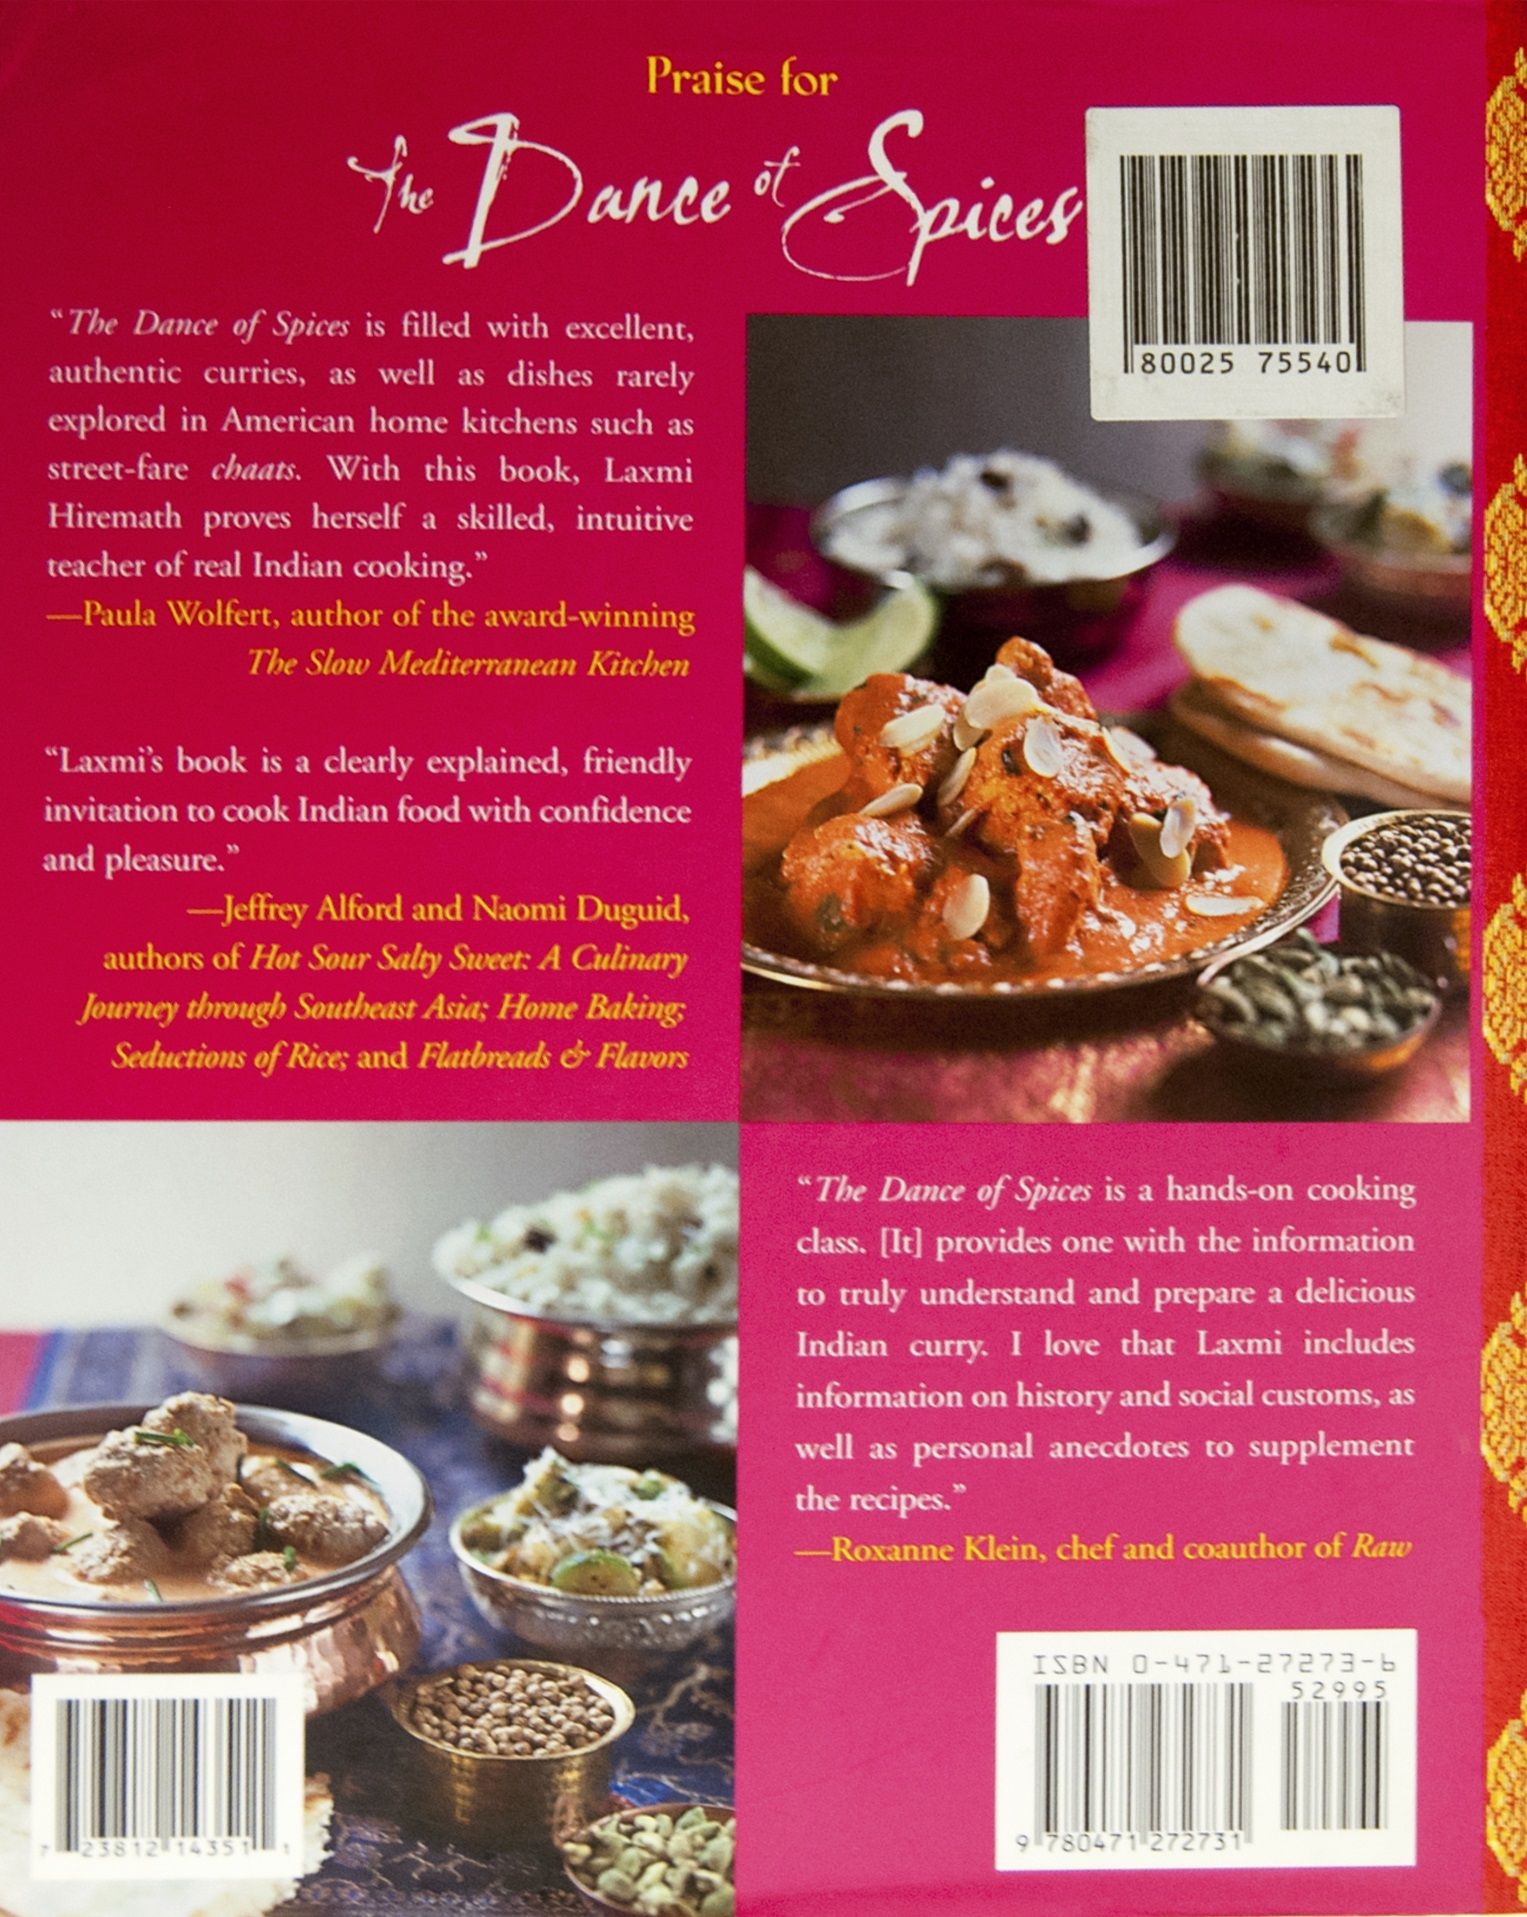 The dance of spices classic indian cooking for todays home kitchen laxmi hiremaths dance of spices back cover forumfinder Choice Image